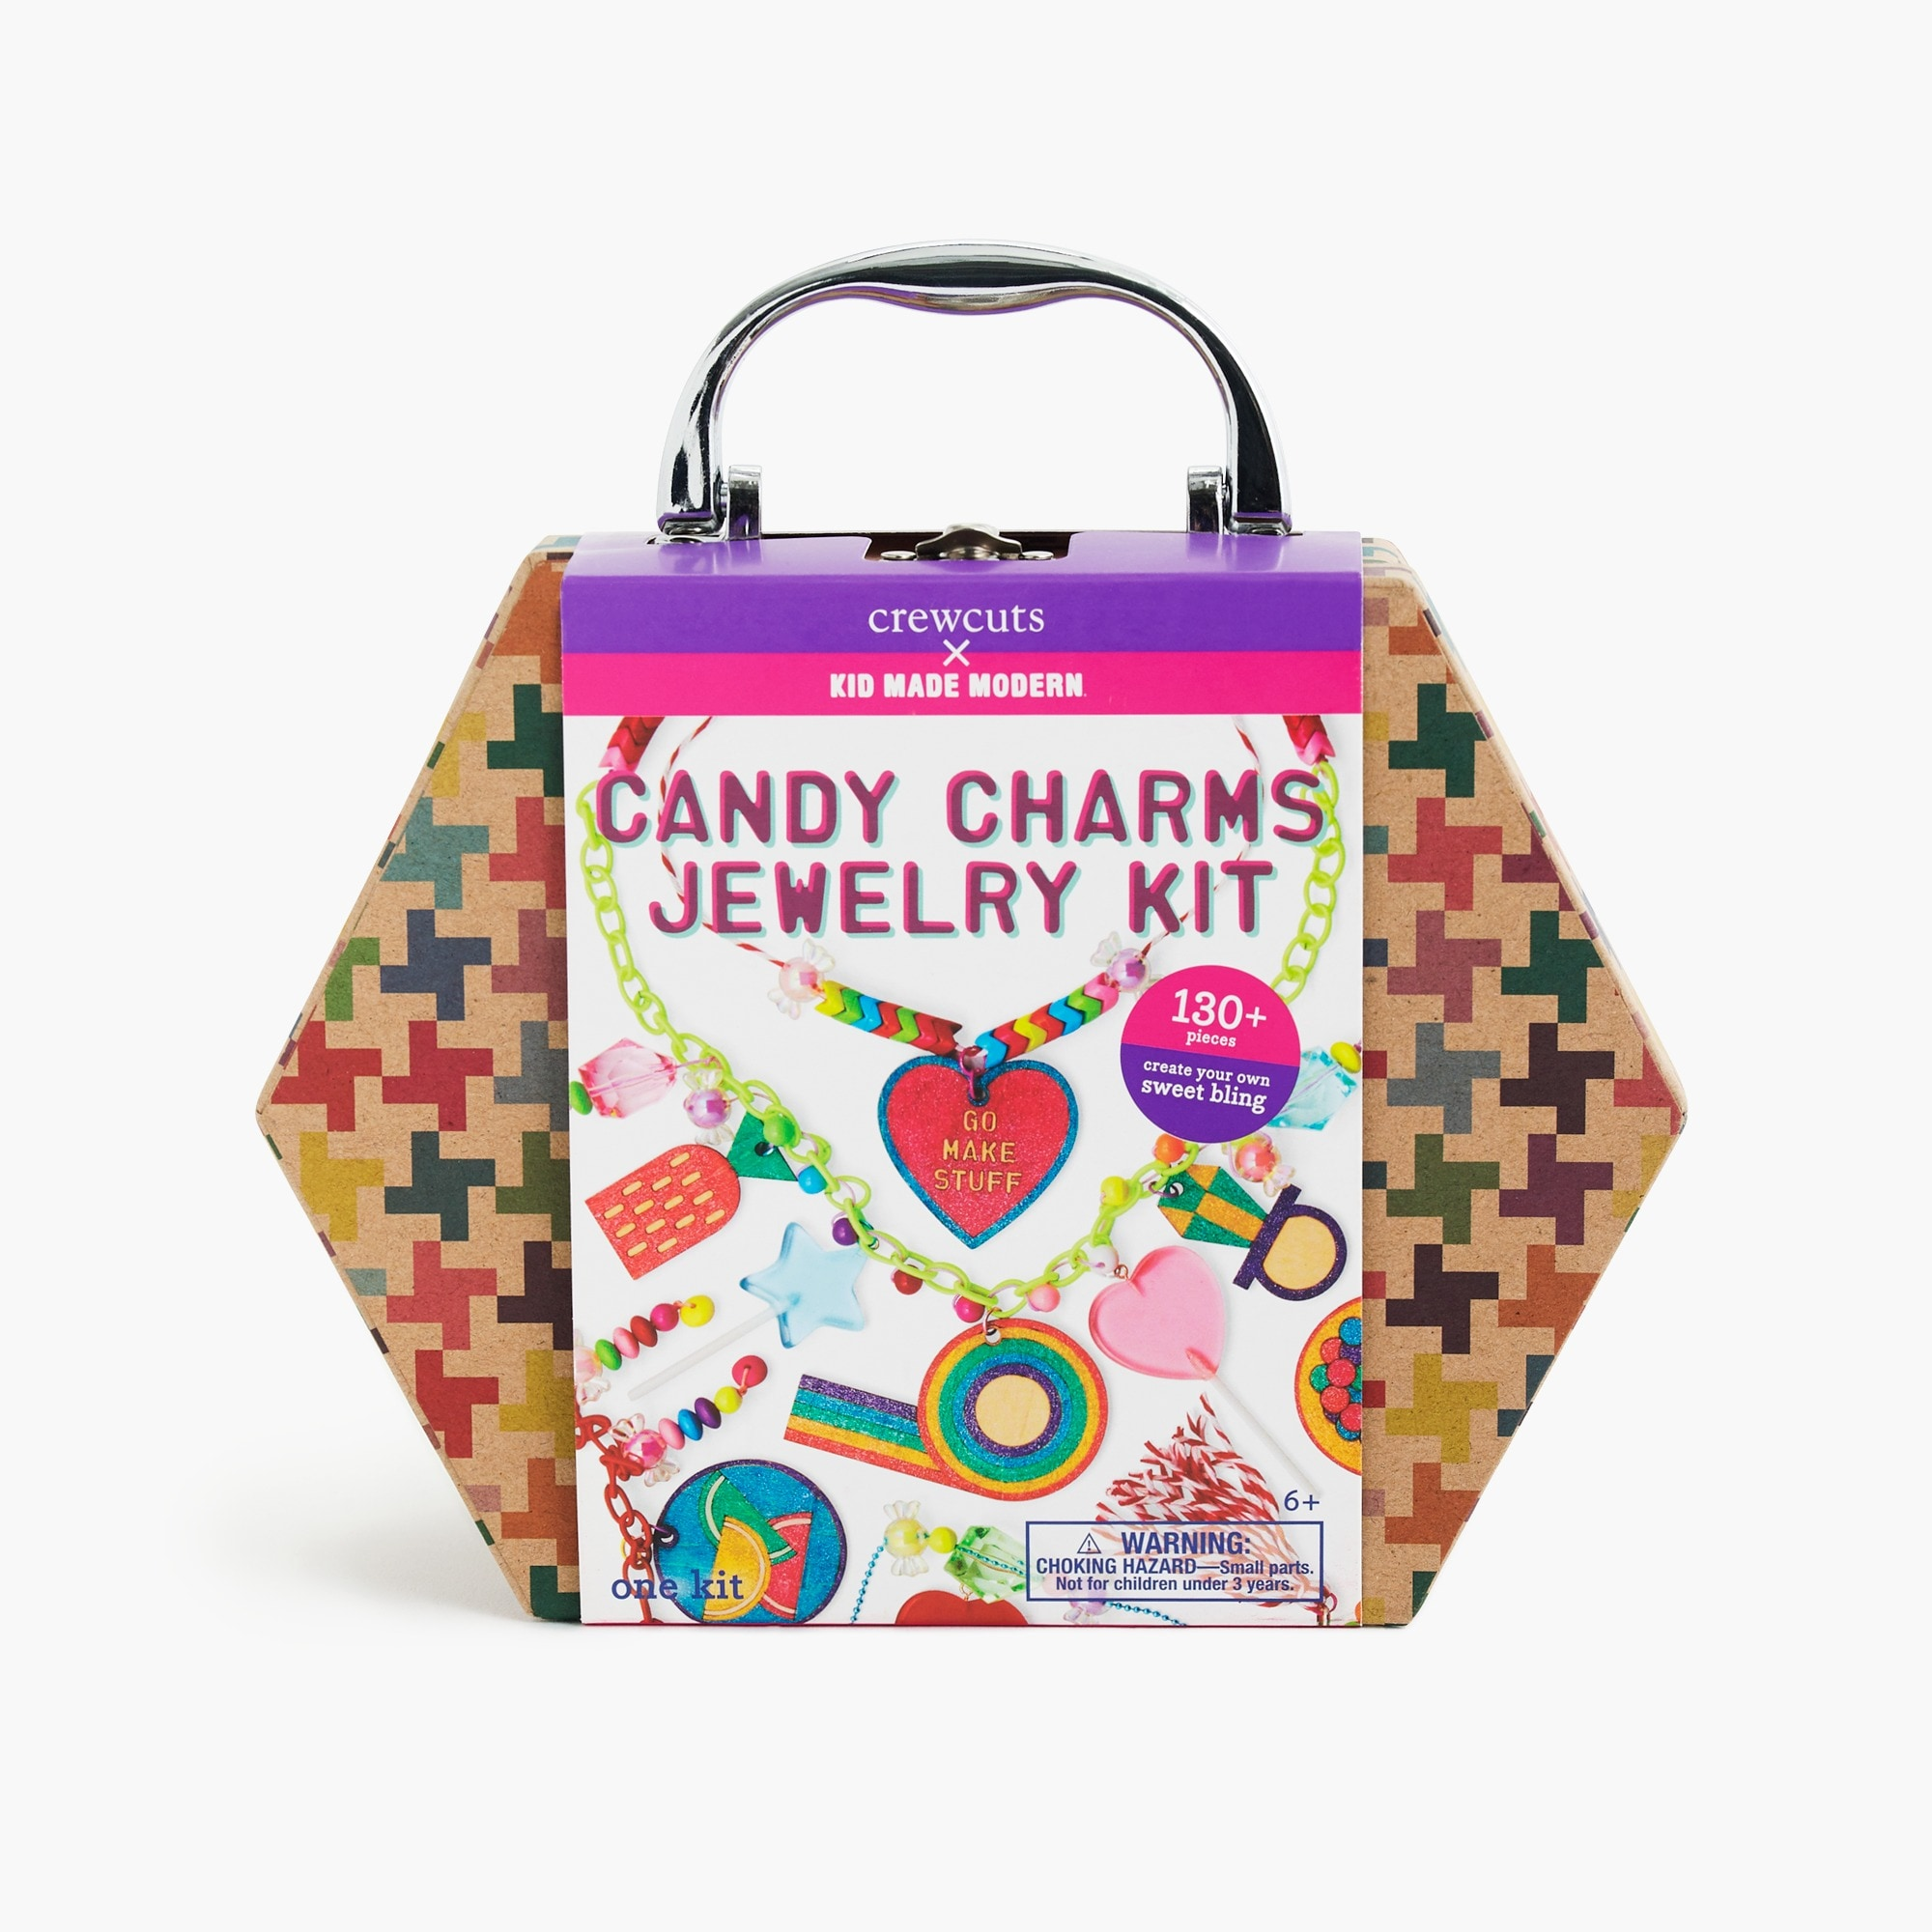 girls Girls' crewcuts X Kid Made Modern make-your-own jewelry kit